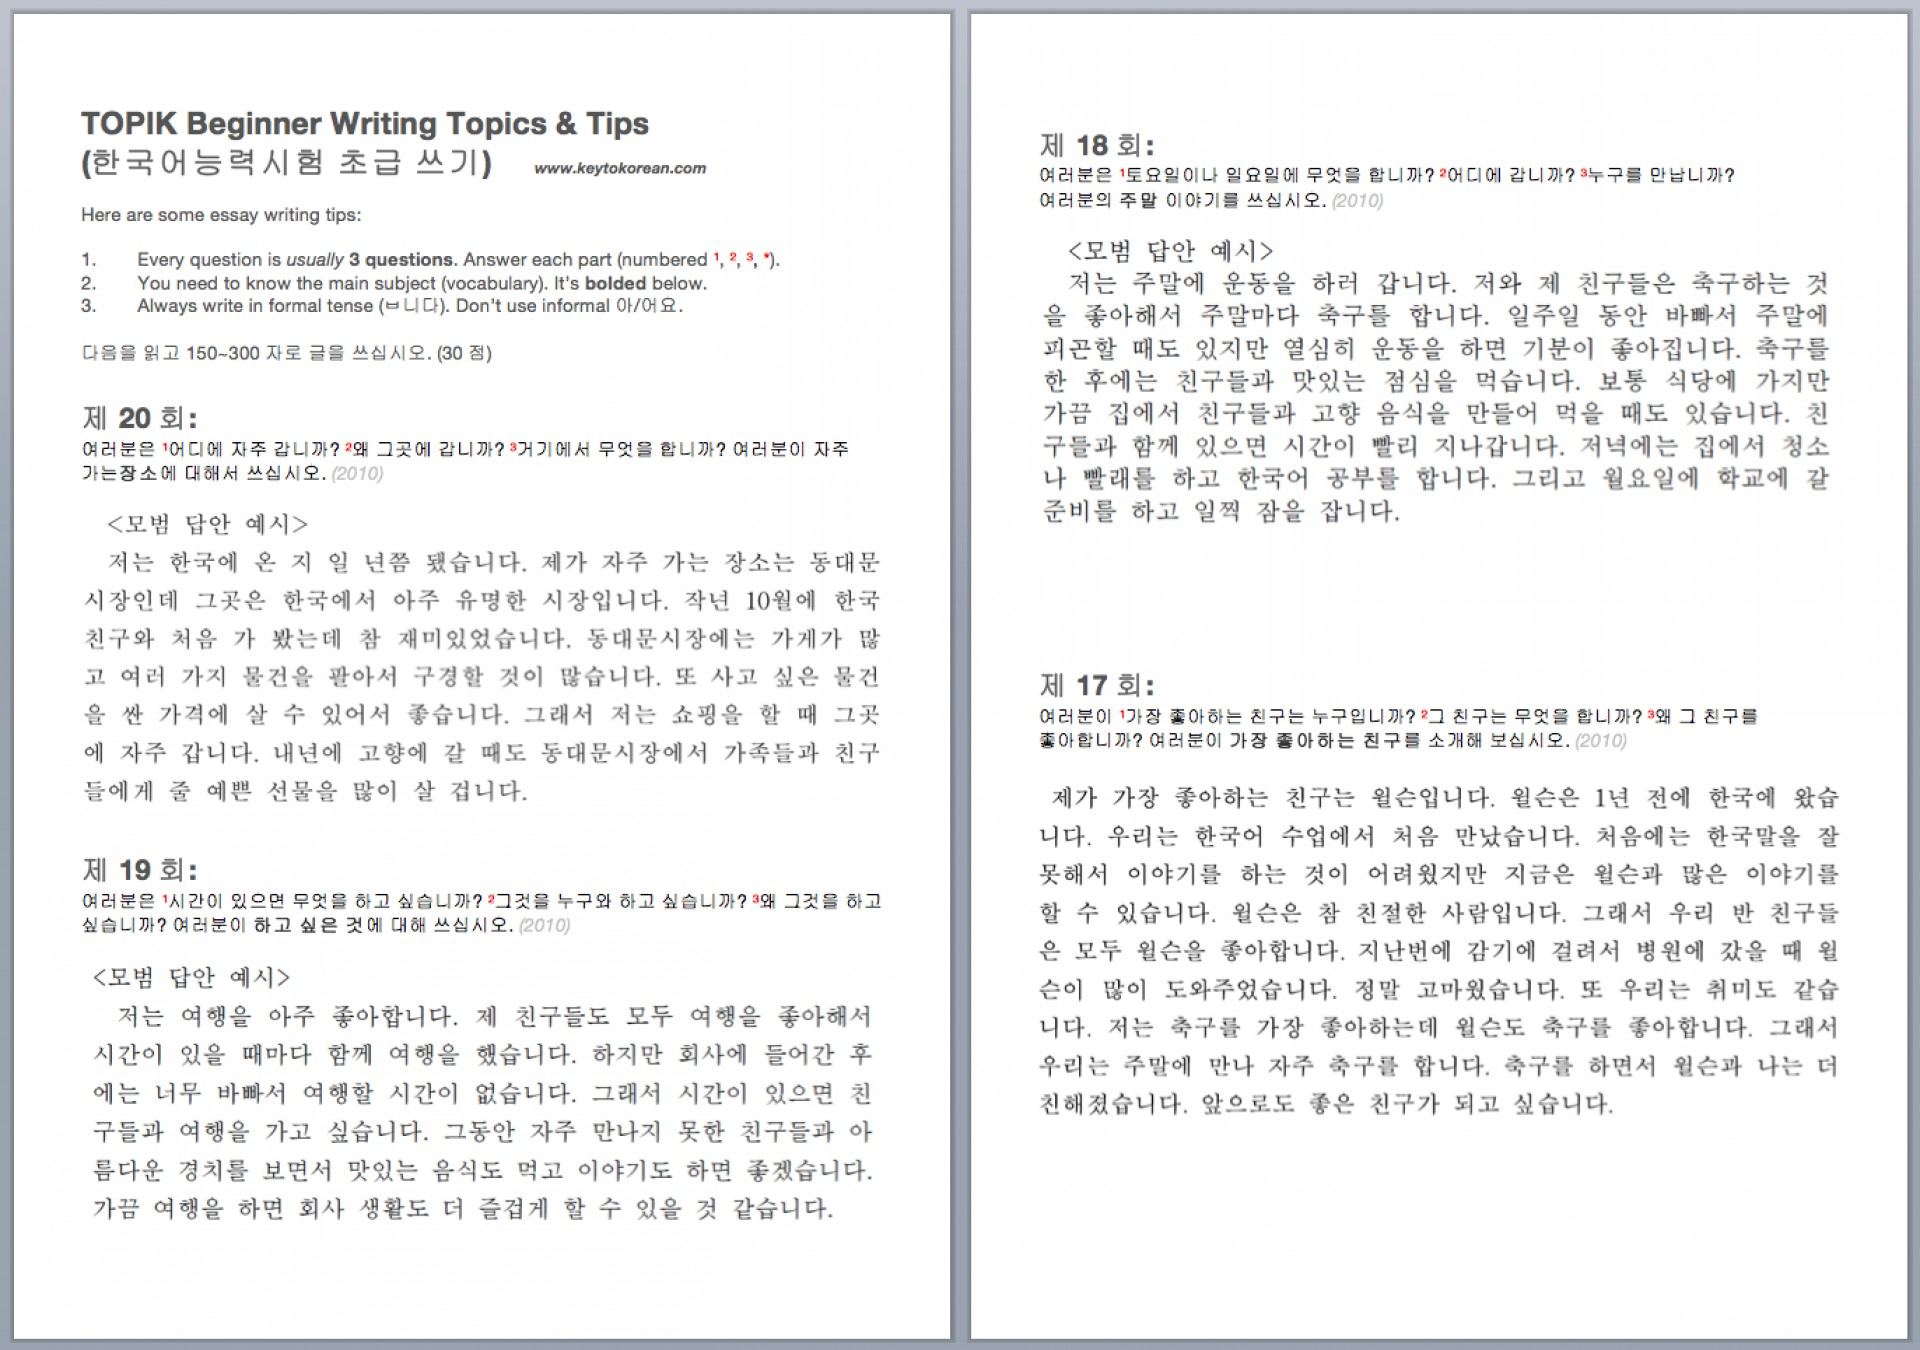 001 Screen Shot At Amssl1 Essay Example Stirring Korean Examples About Myself Contest 1920